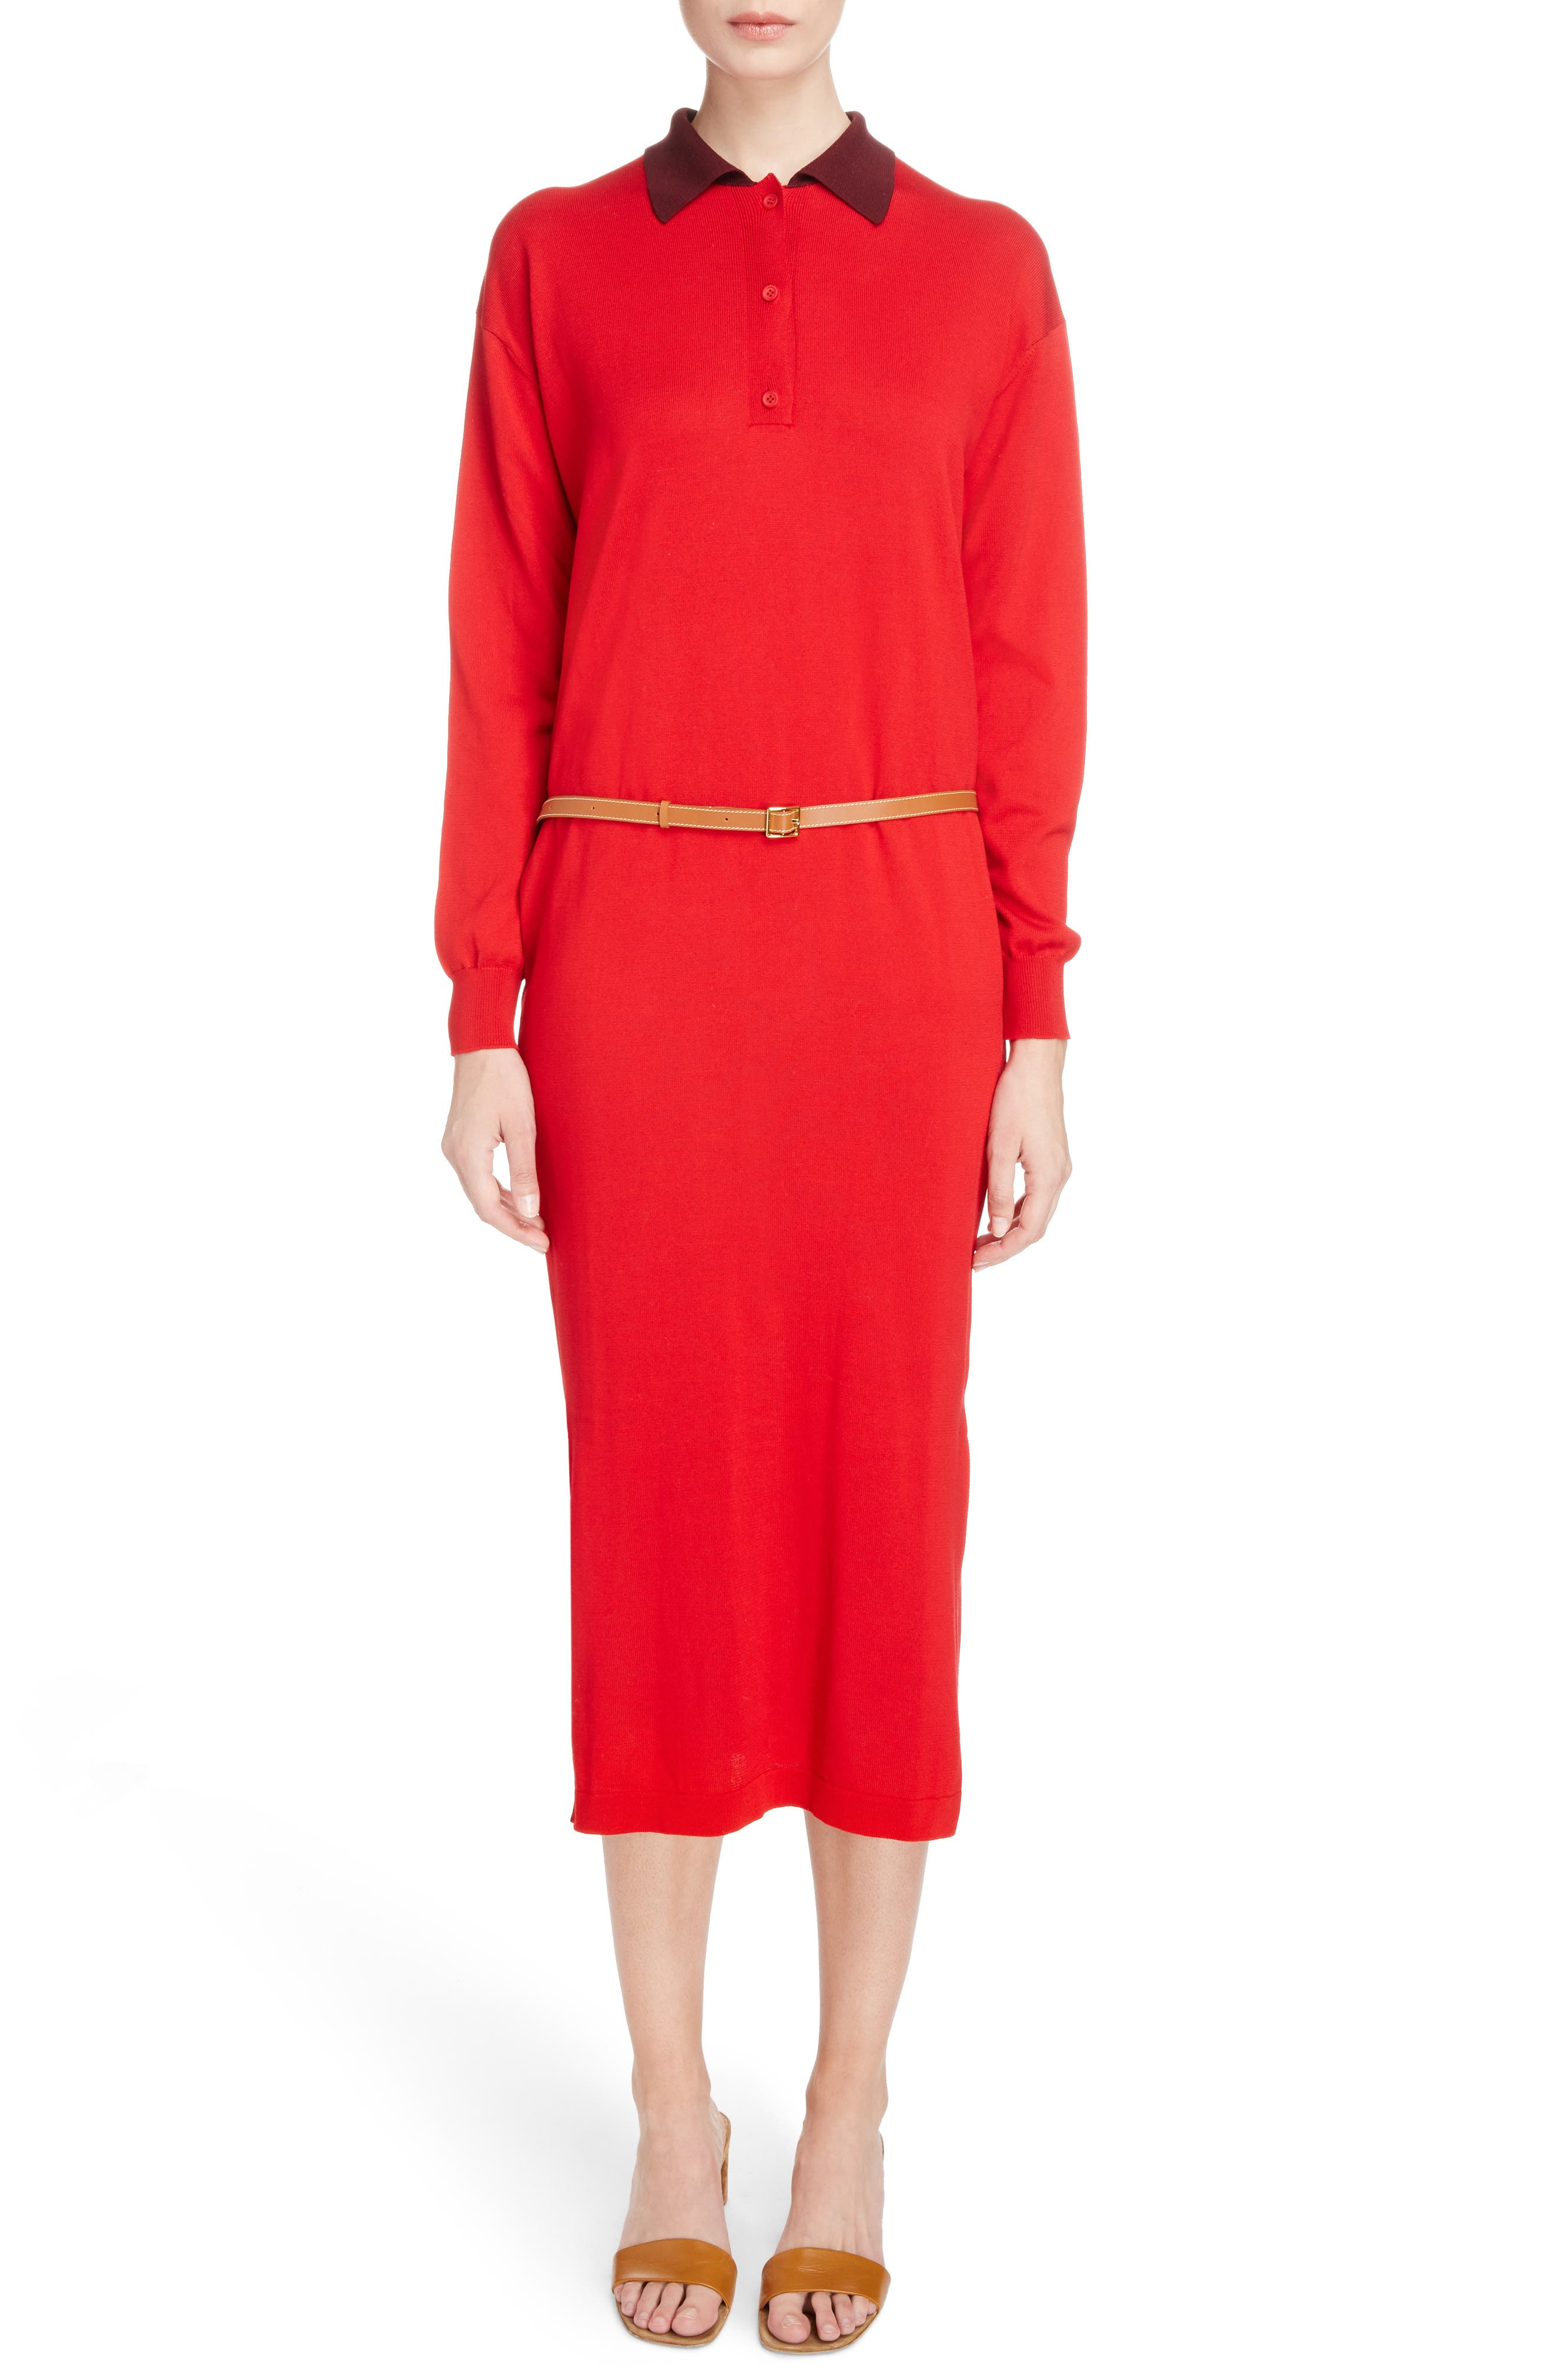 Belted Polo Dress,                             Main thumbnail 1, color,                             Red/ Burgundy